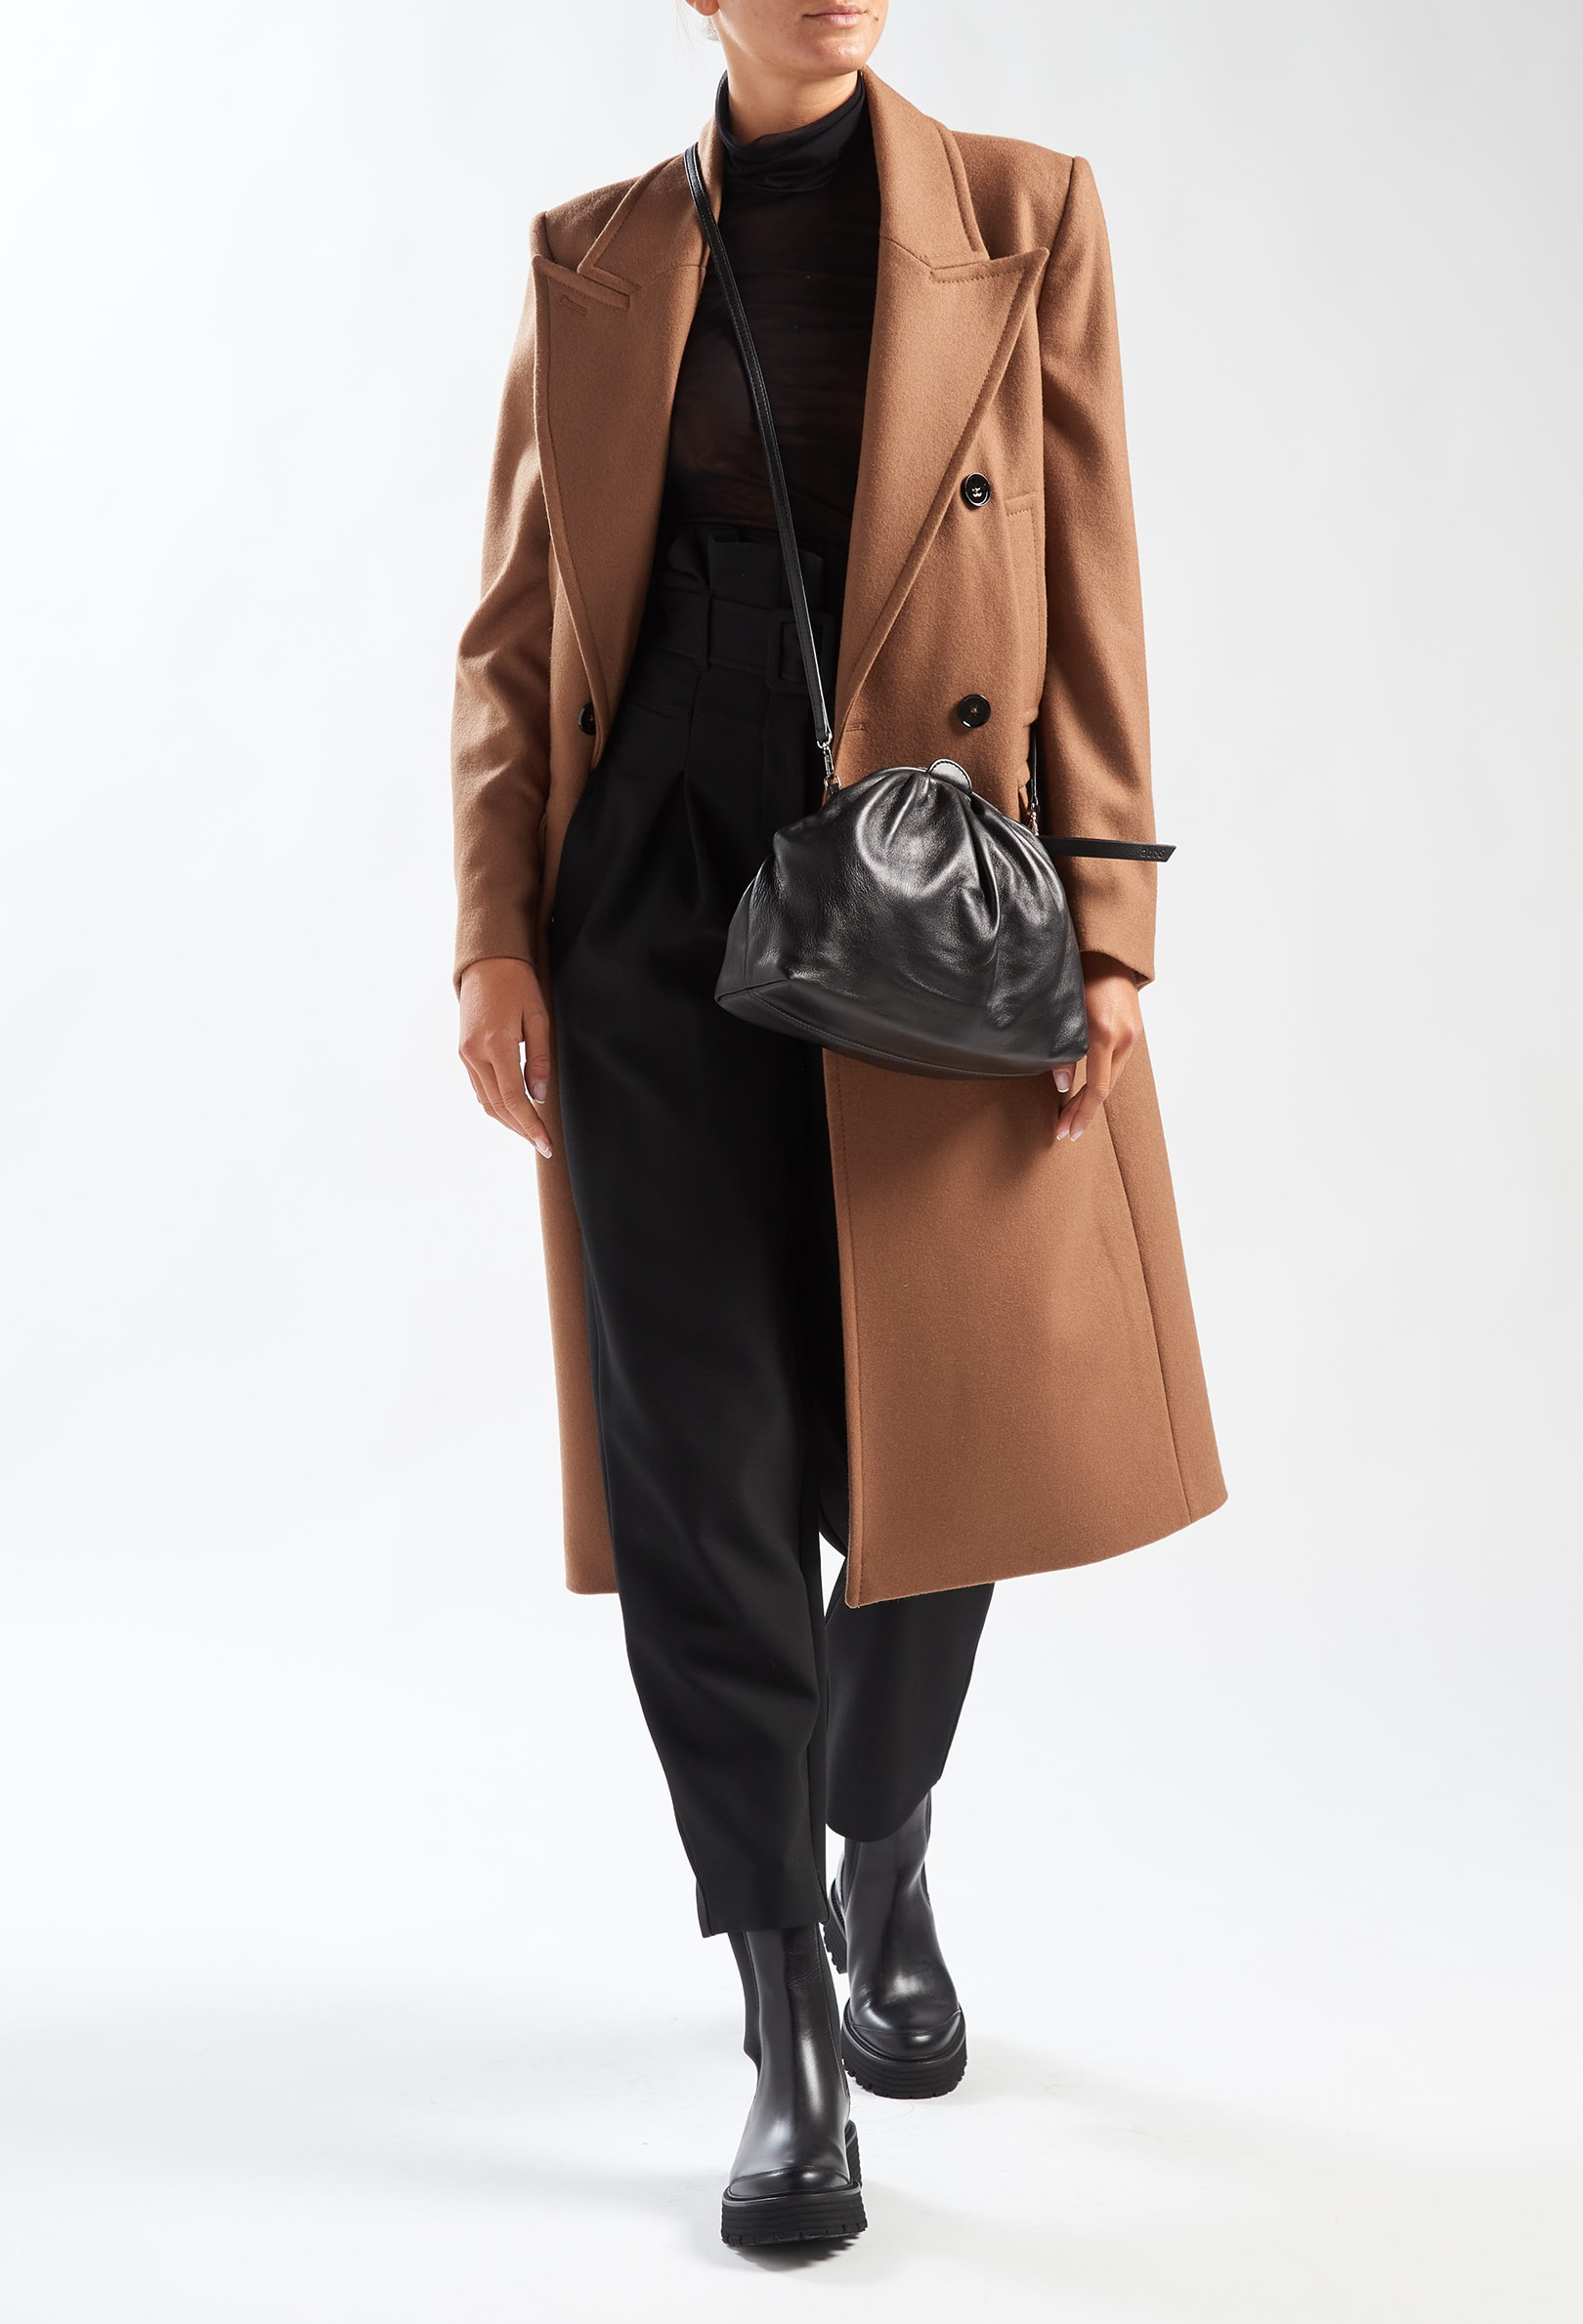 Strong Woman - Look 3